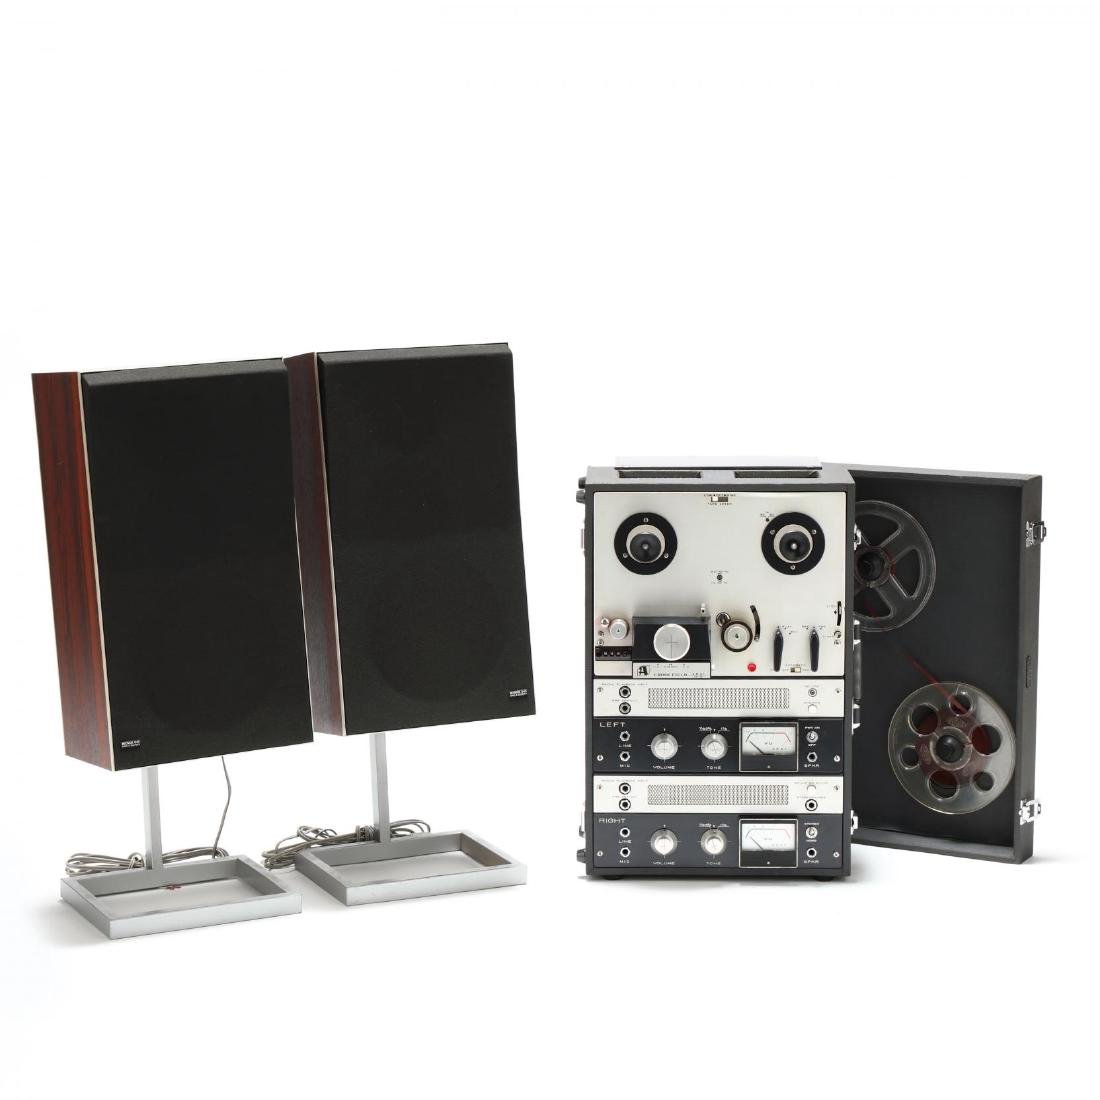 Akai Tape Recorder, and Bang & Olufson Speakers